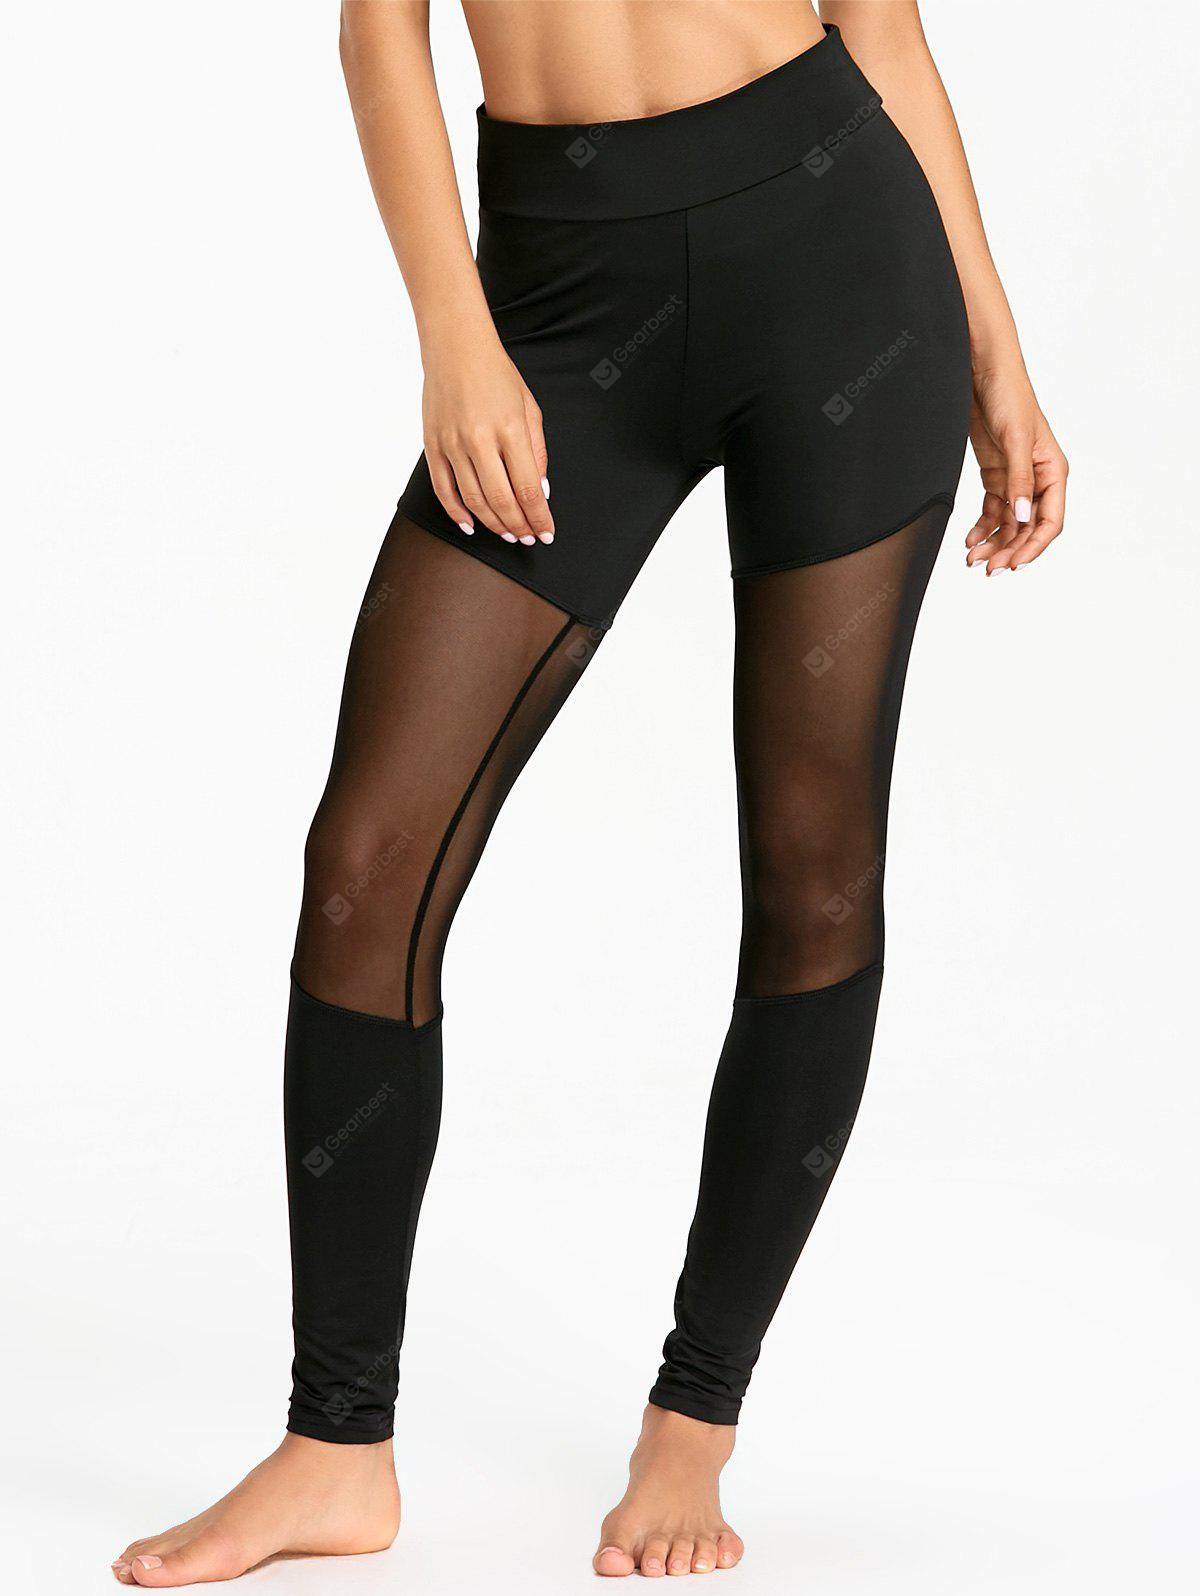 Sheer Mesh Panel Sports Tights